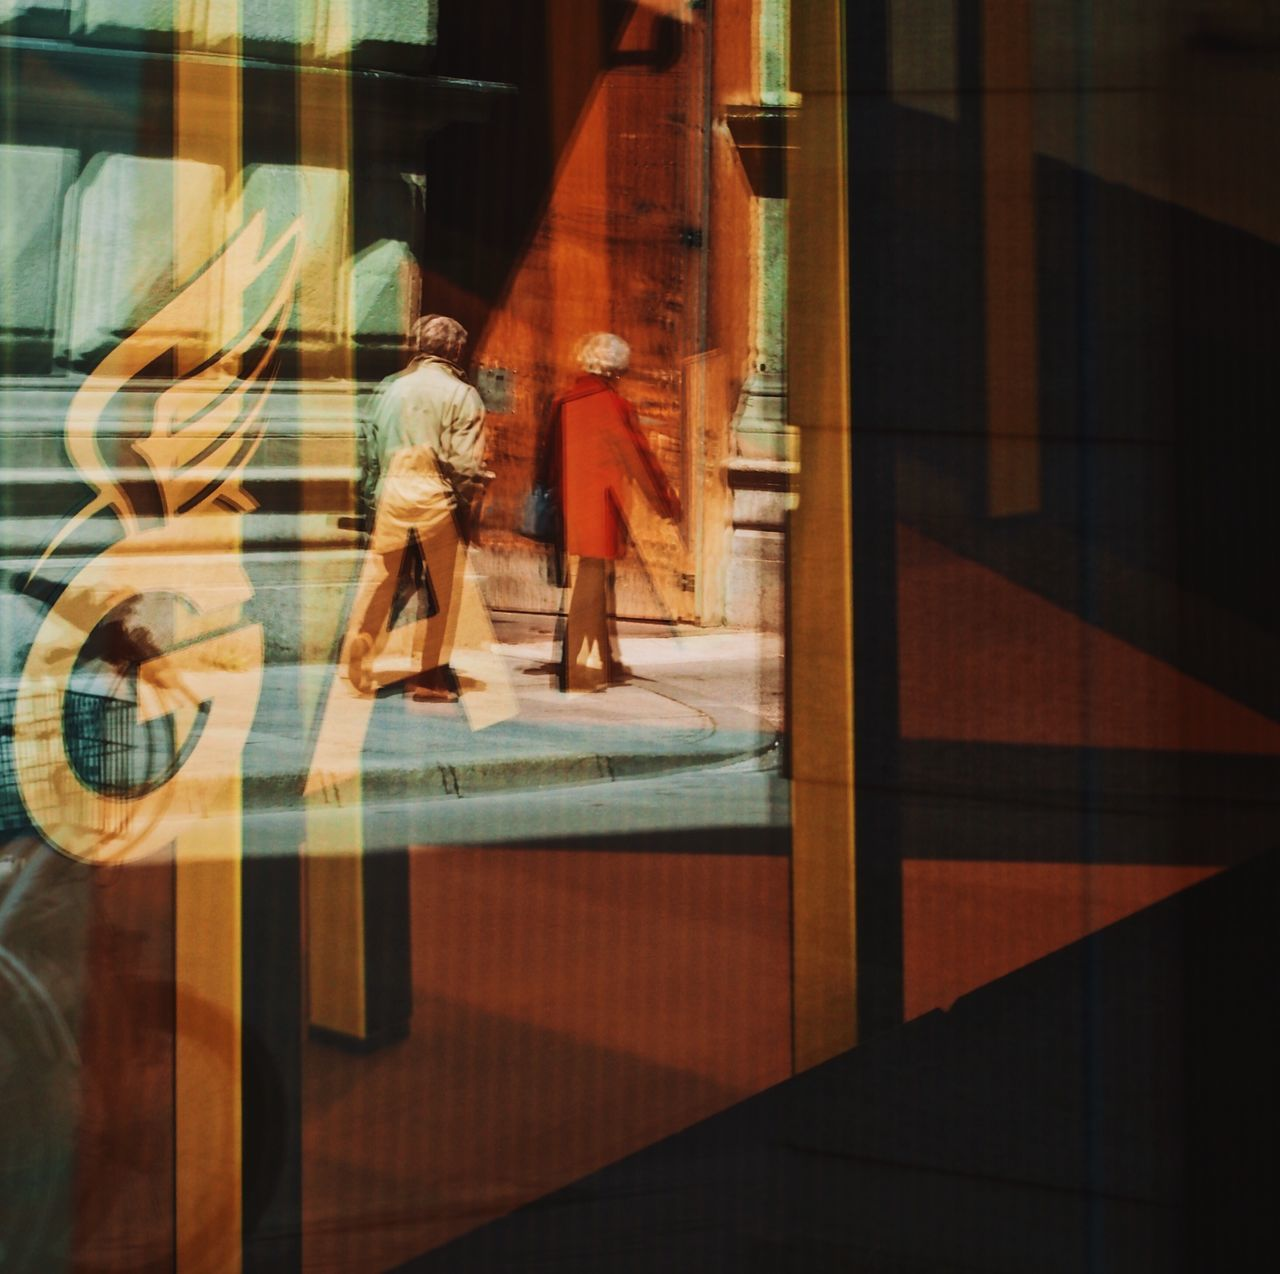 The Street Photographer - 2017 EyeEm Awards Reflection Real People Walking Window Lifestyles People Sebastianriegerphotos Streetphotography Blurred Motion